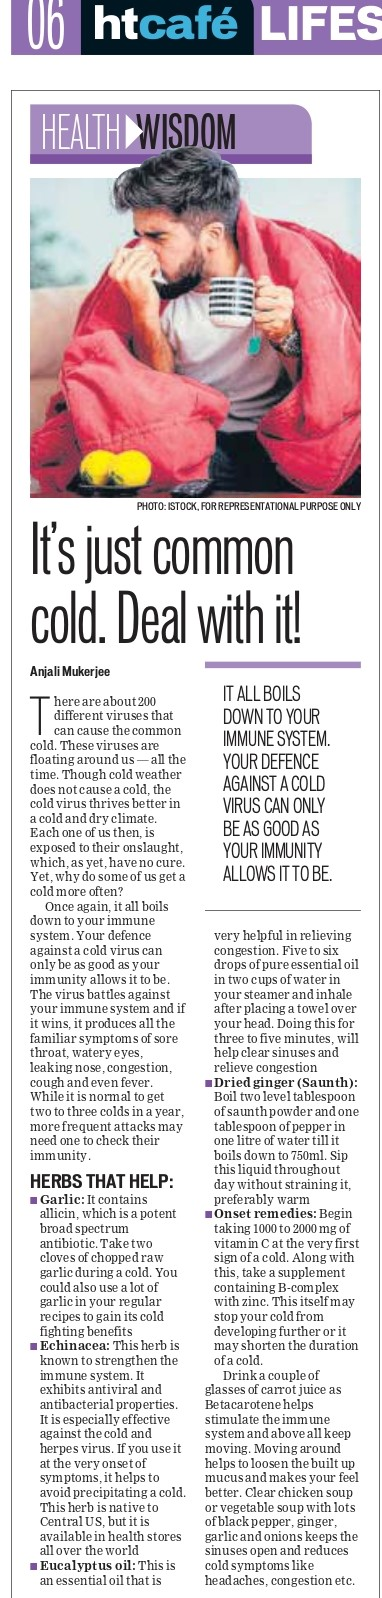 It's just common cold. Deal with it